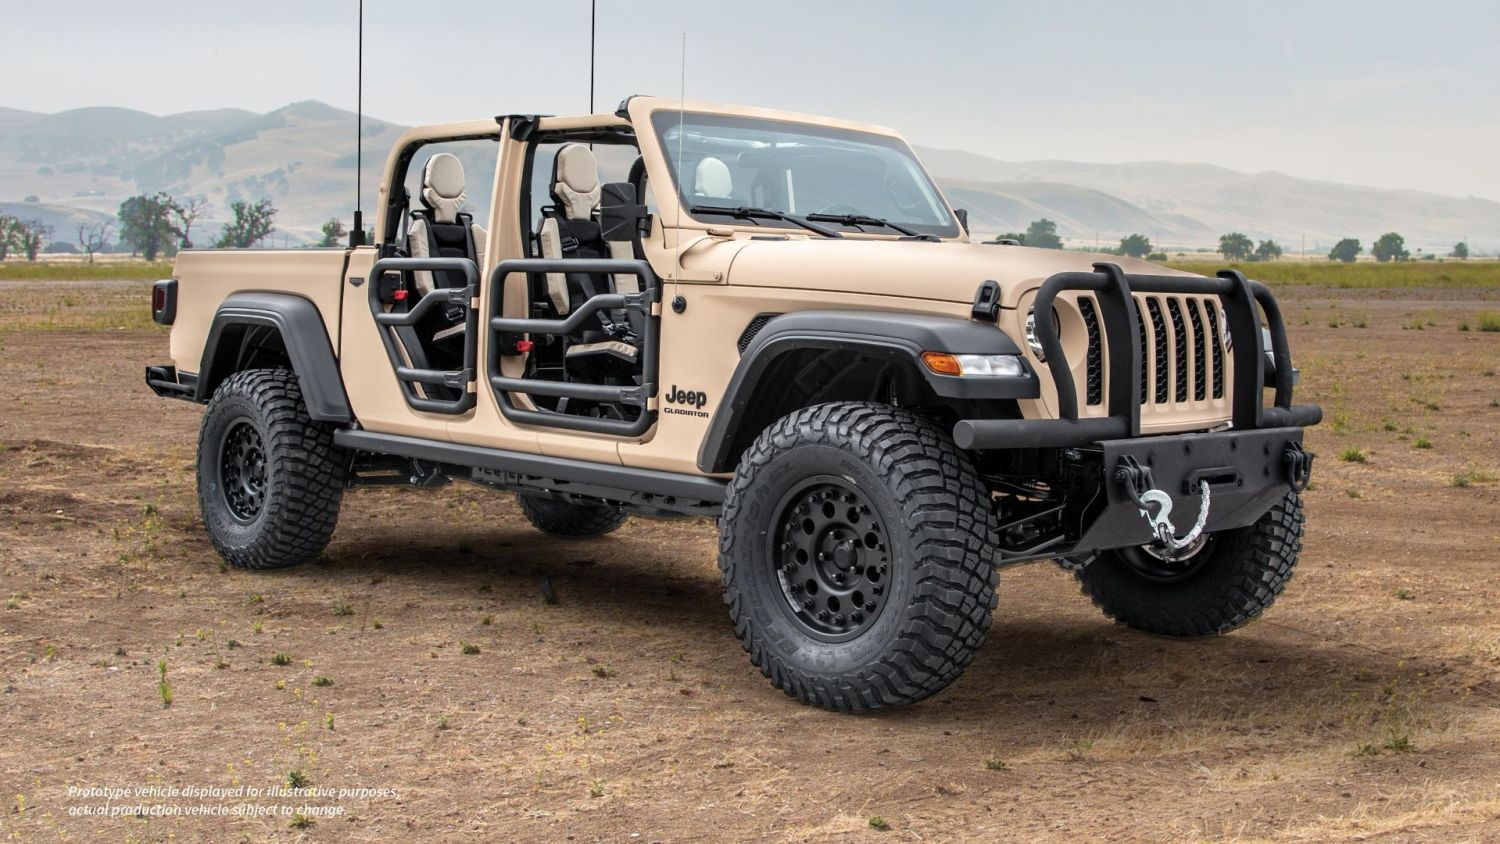 Jeep Gladiator army truck